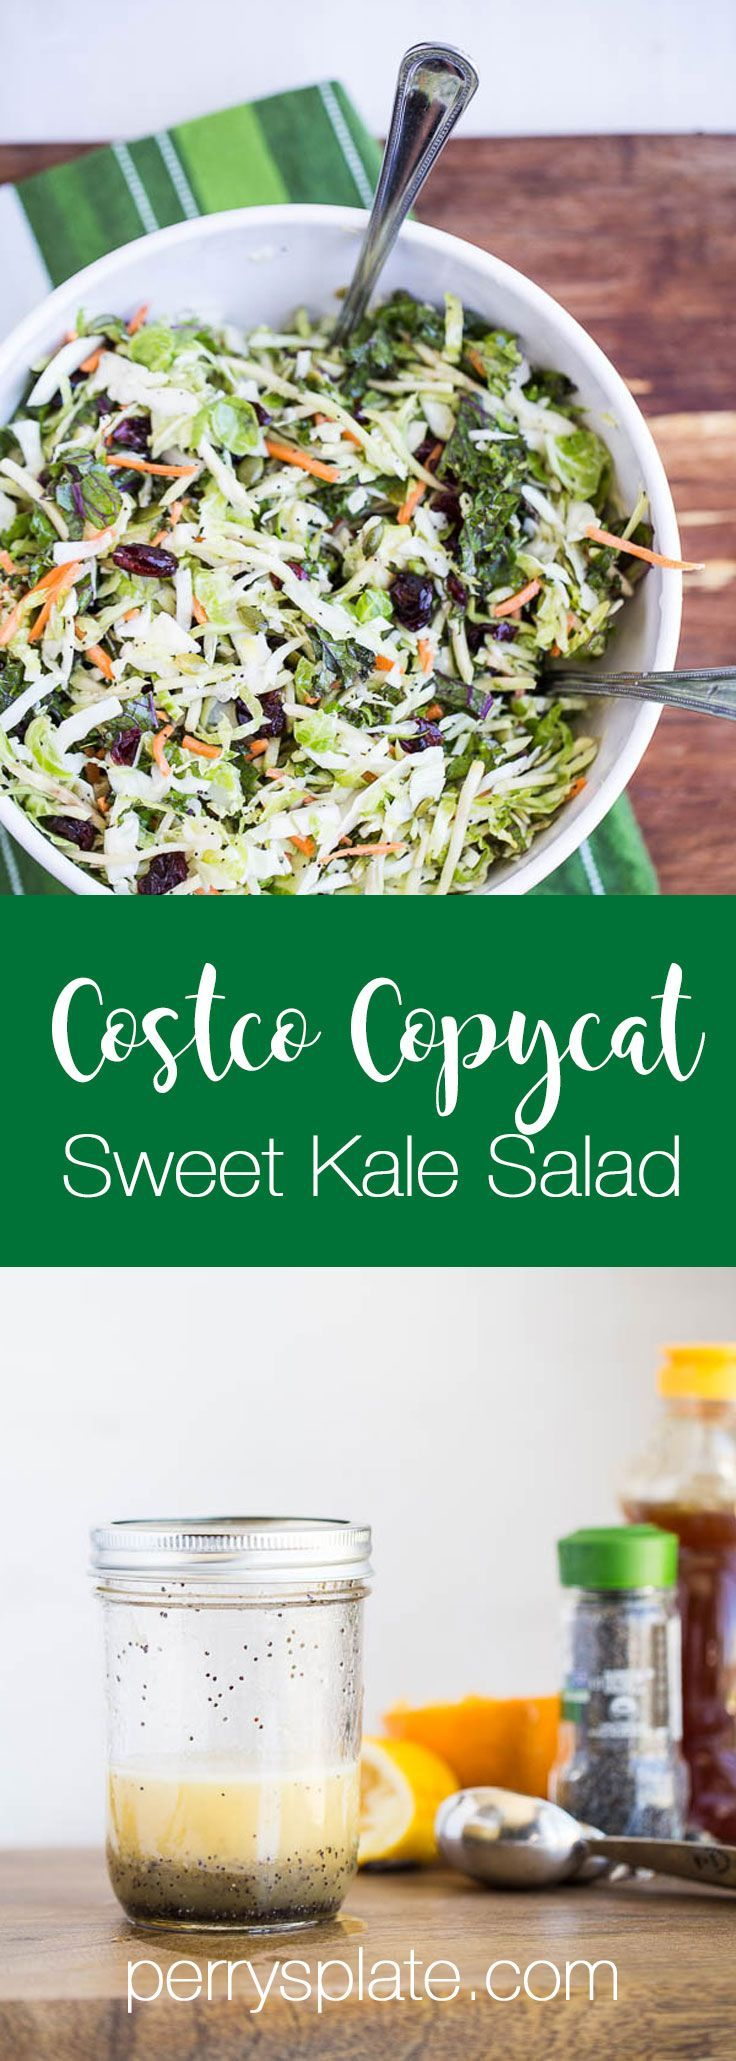 Your favorite Costco salad kit with a healthy, soy-free dressing! | salad recipes | kale recipes | paleo recipes | perrysplate.com